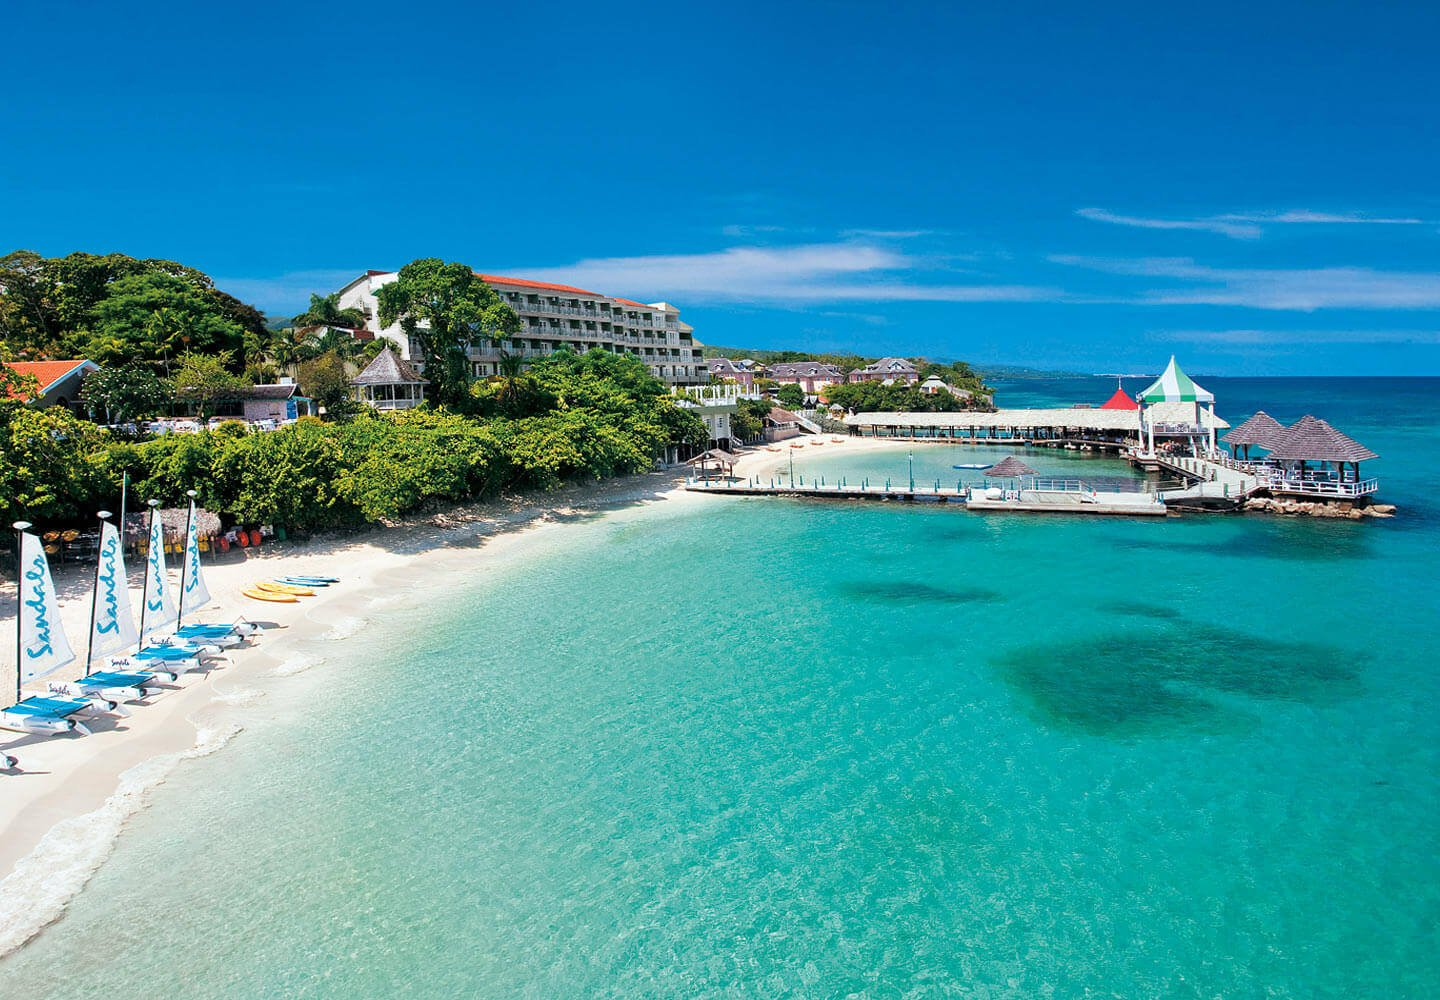 Sandals Ochi Beach Resort - All Inclusive Vacations